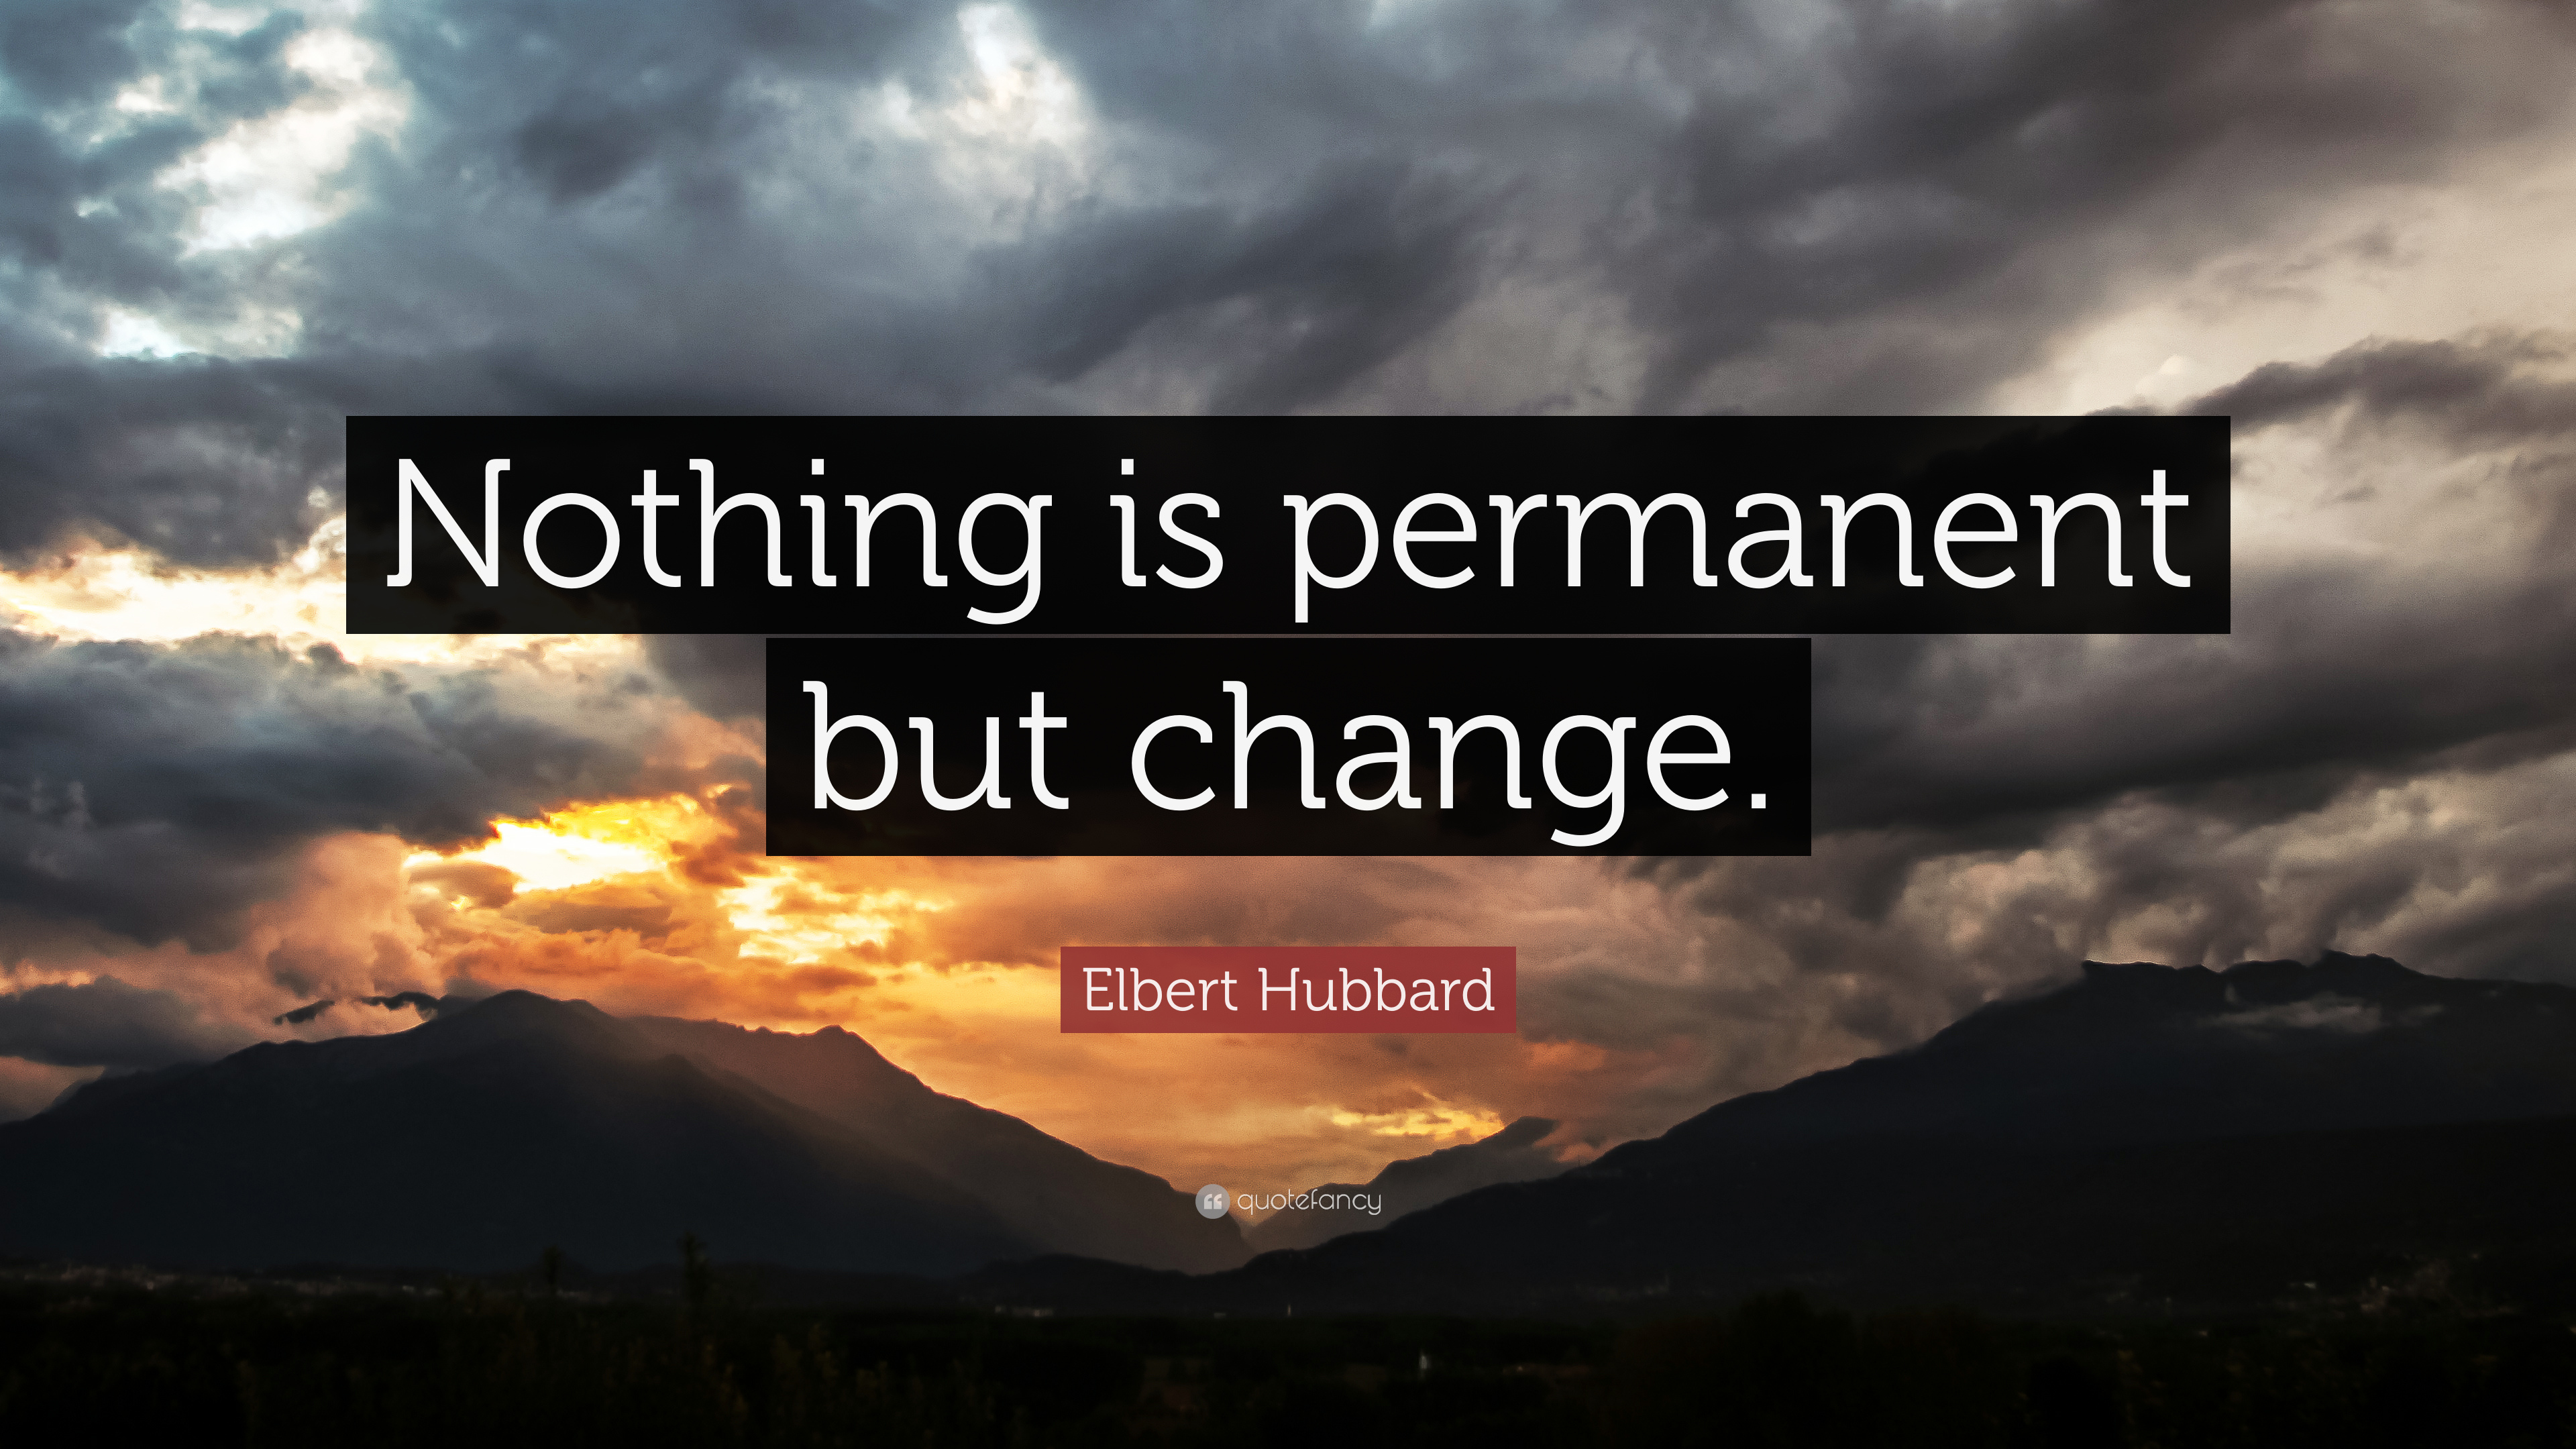 Nothing permanent but change means life